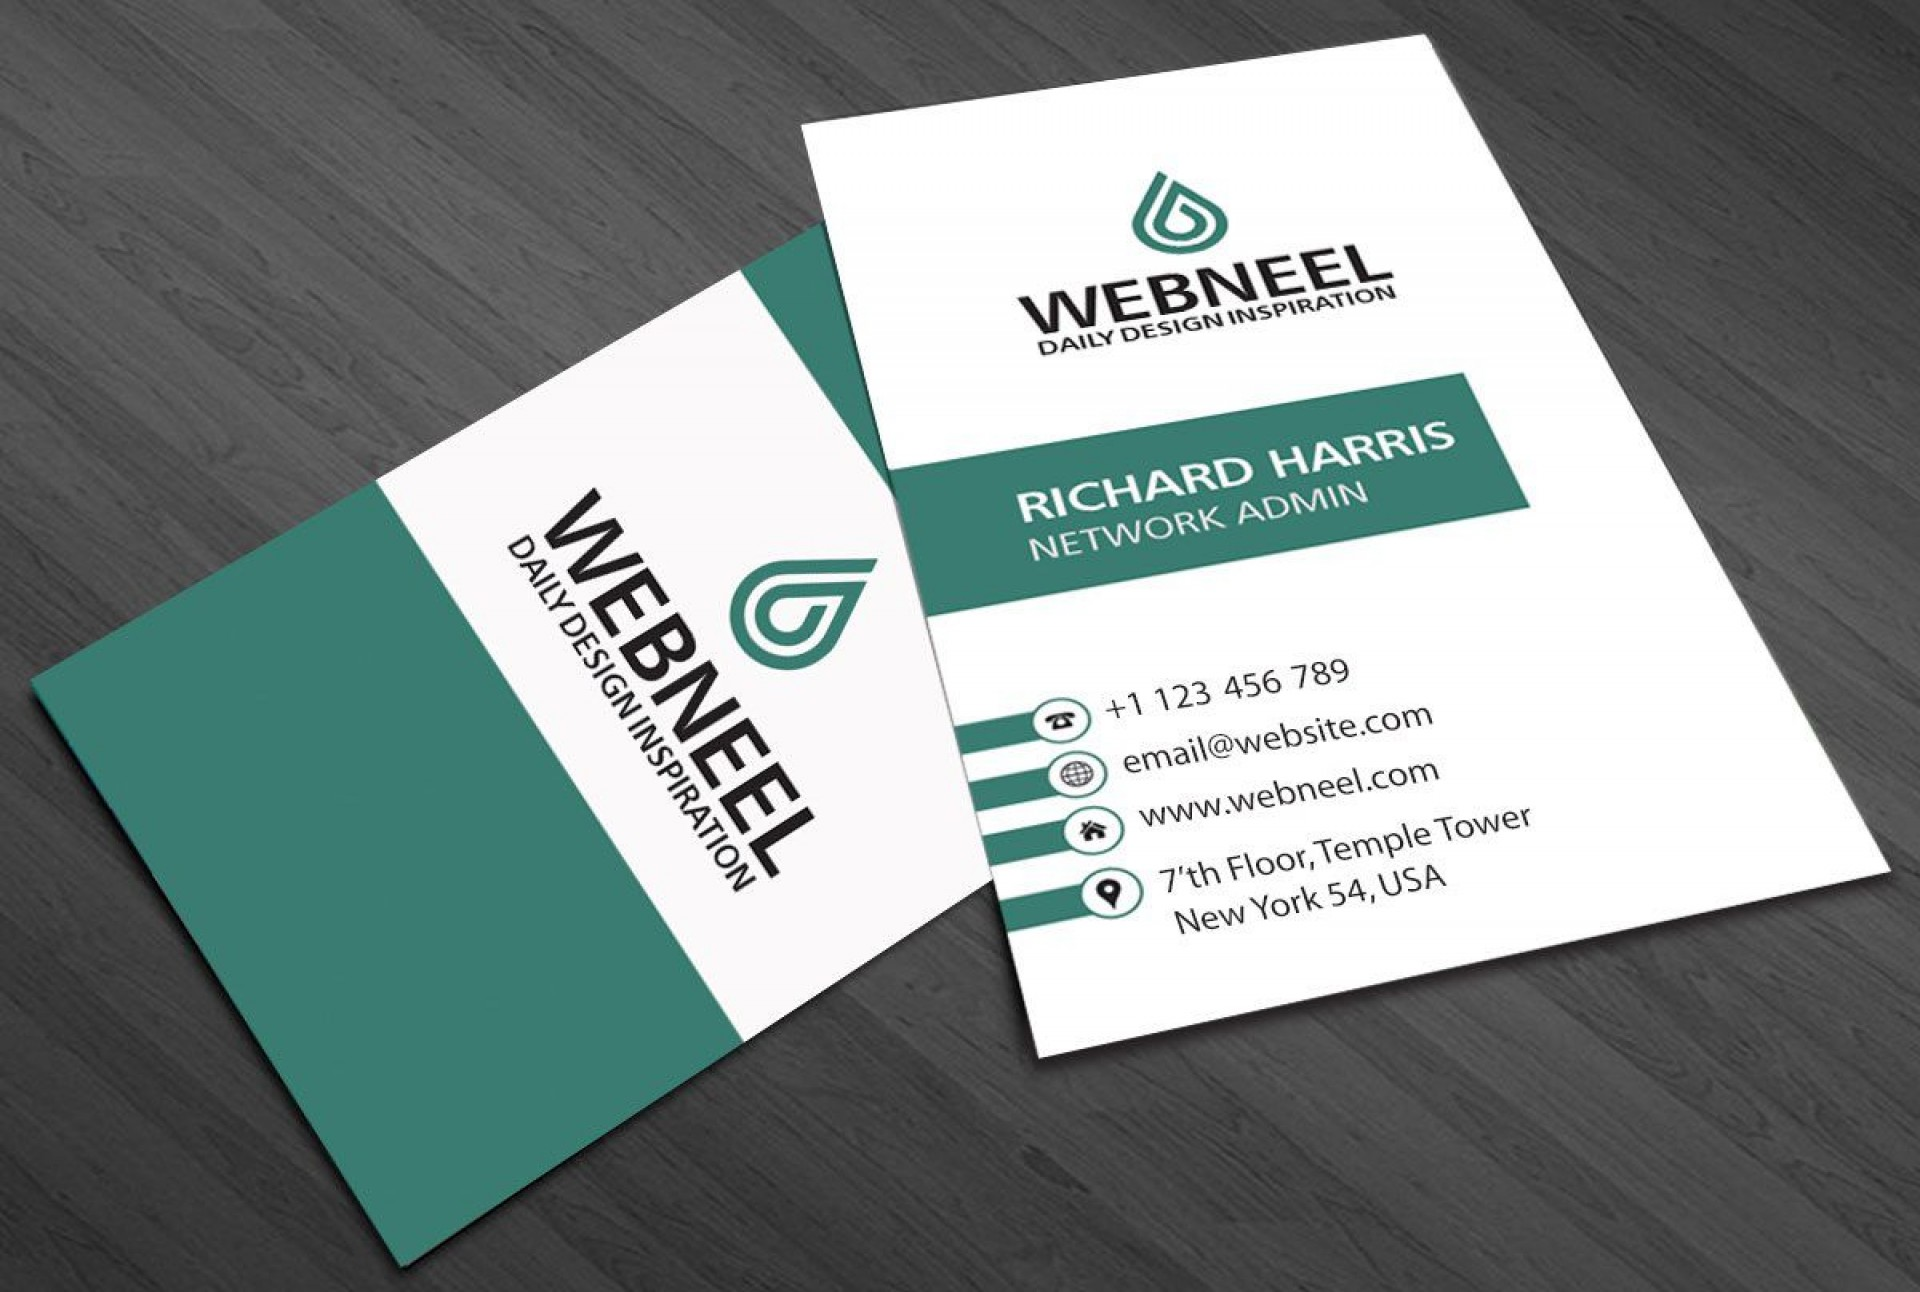 001 Awesome Simple Visiting Card Template Idea  Templates Busines Psd Design File Free Download1920